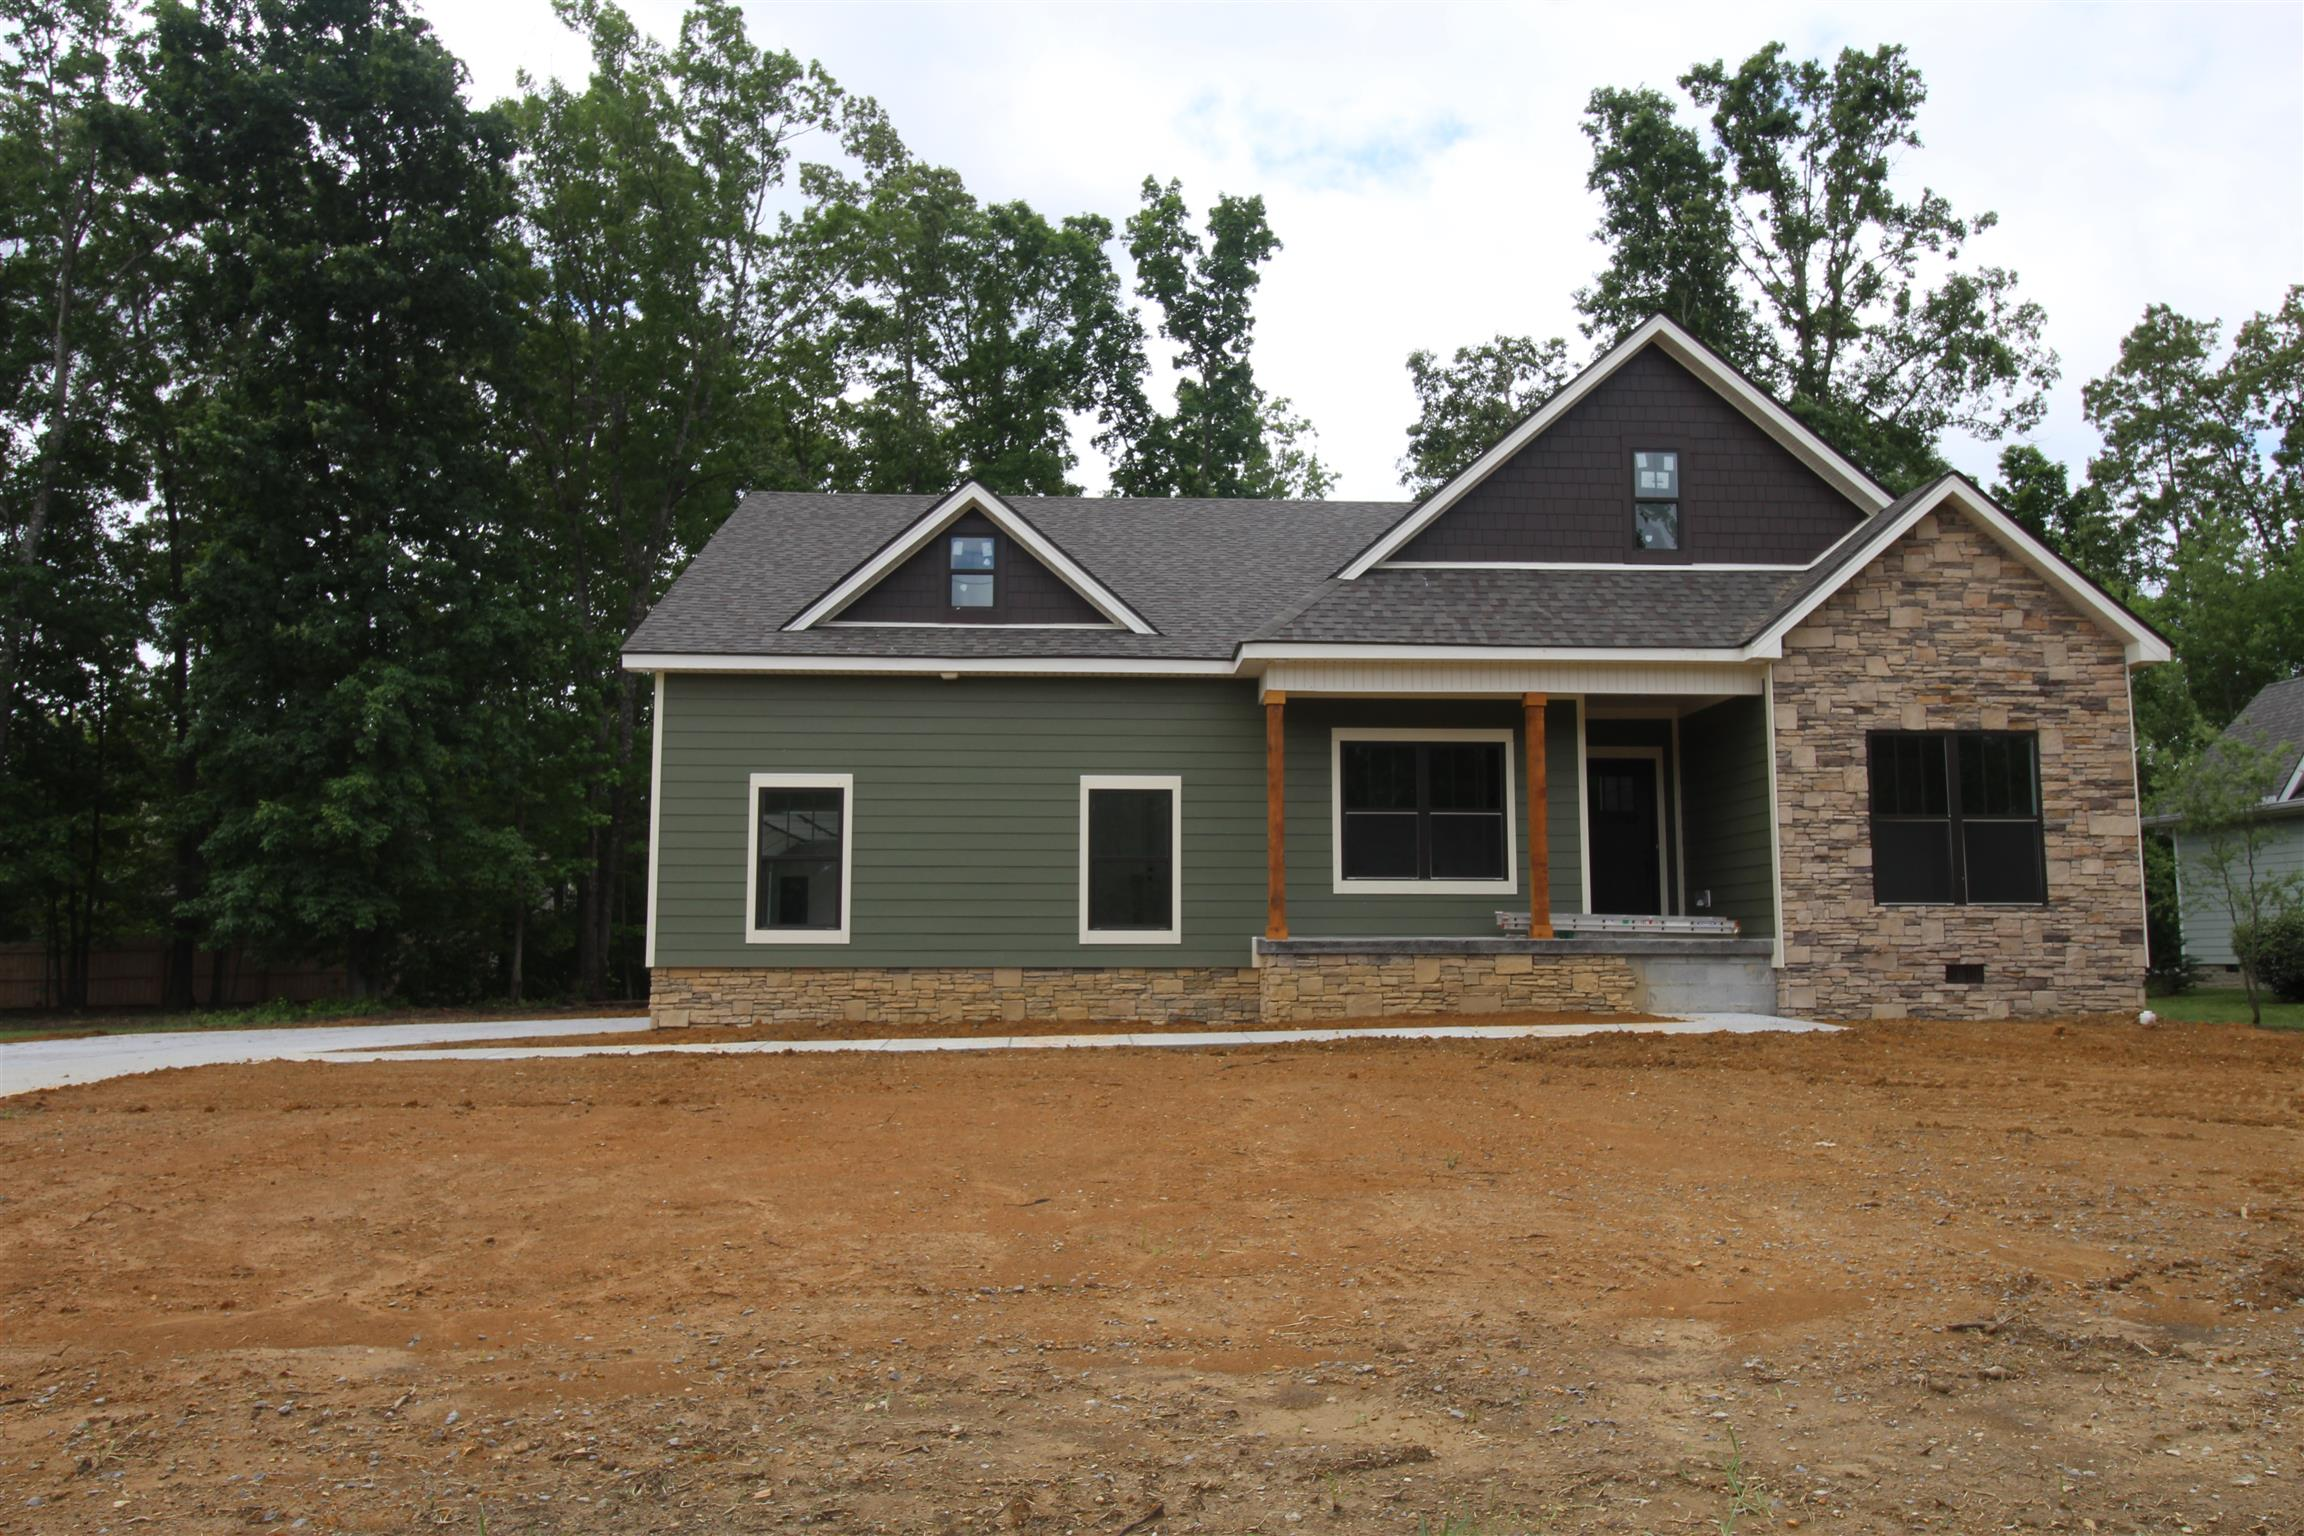 356 Oak Glen Dr (Lot 37), Smithville, TN 37166 - Smithville, TN real estate listing